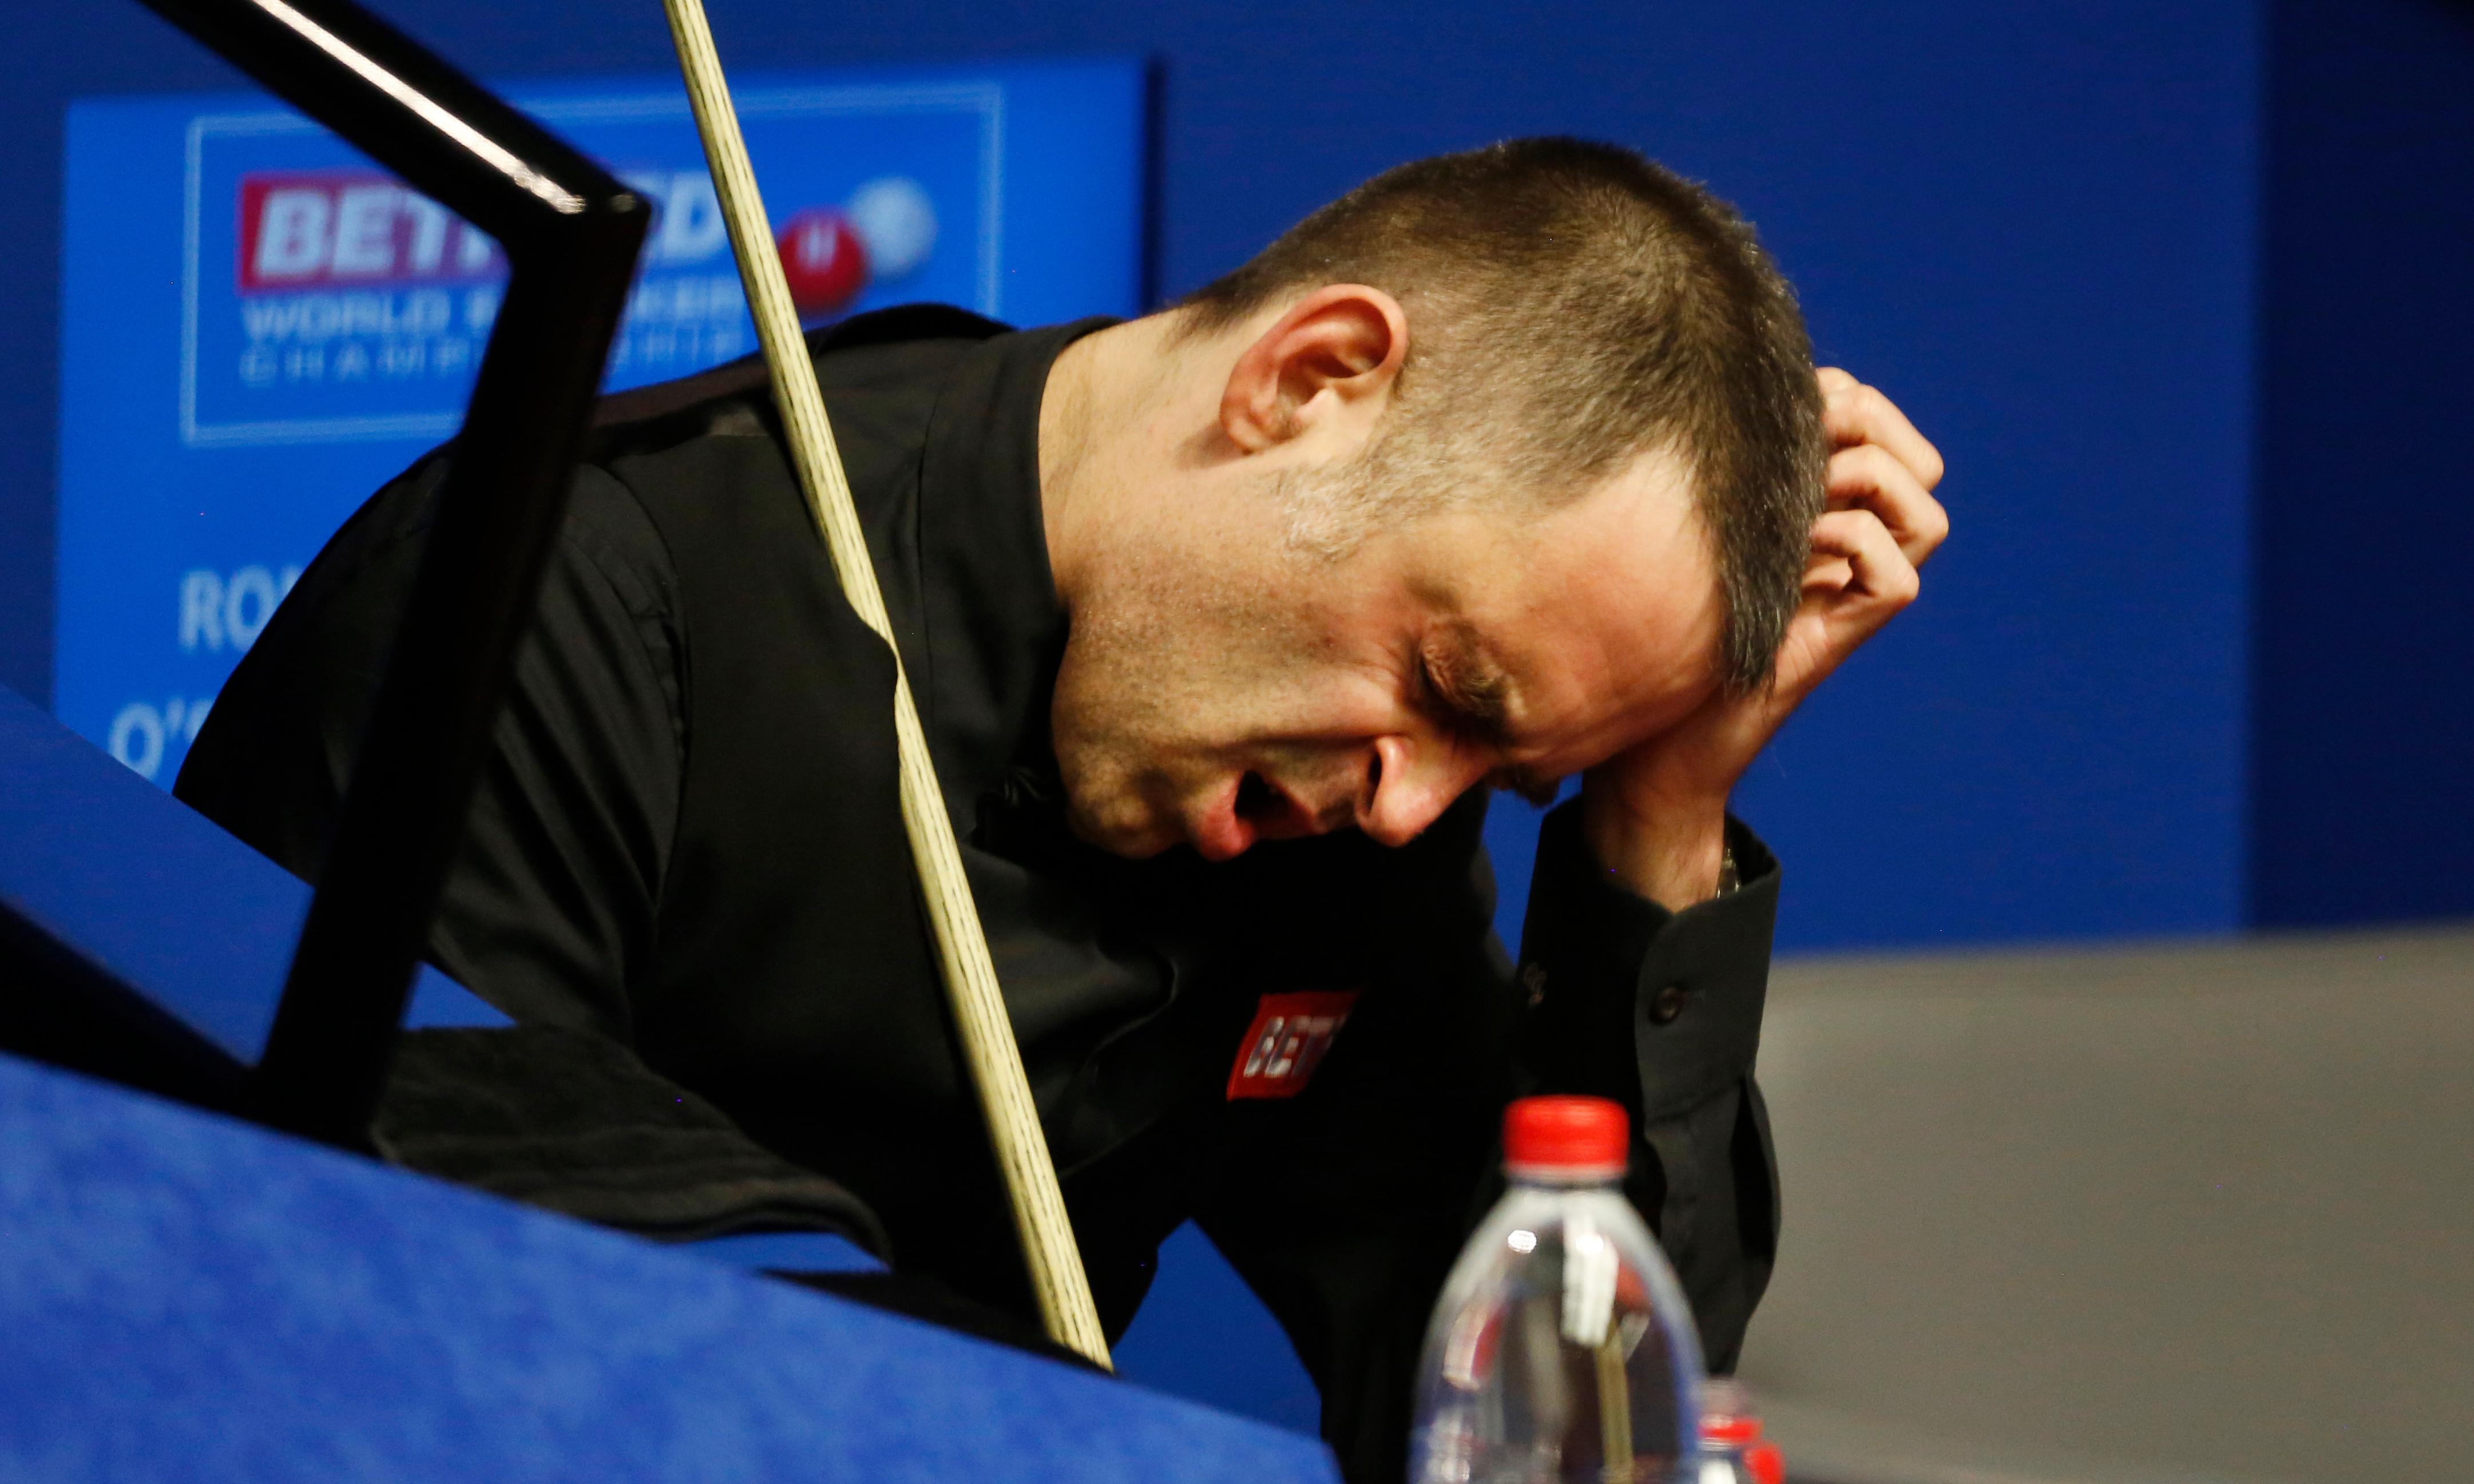 'Struggling to stay awake': O'Sullivan drained after Crucible defeat to amateur